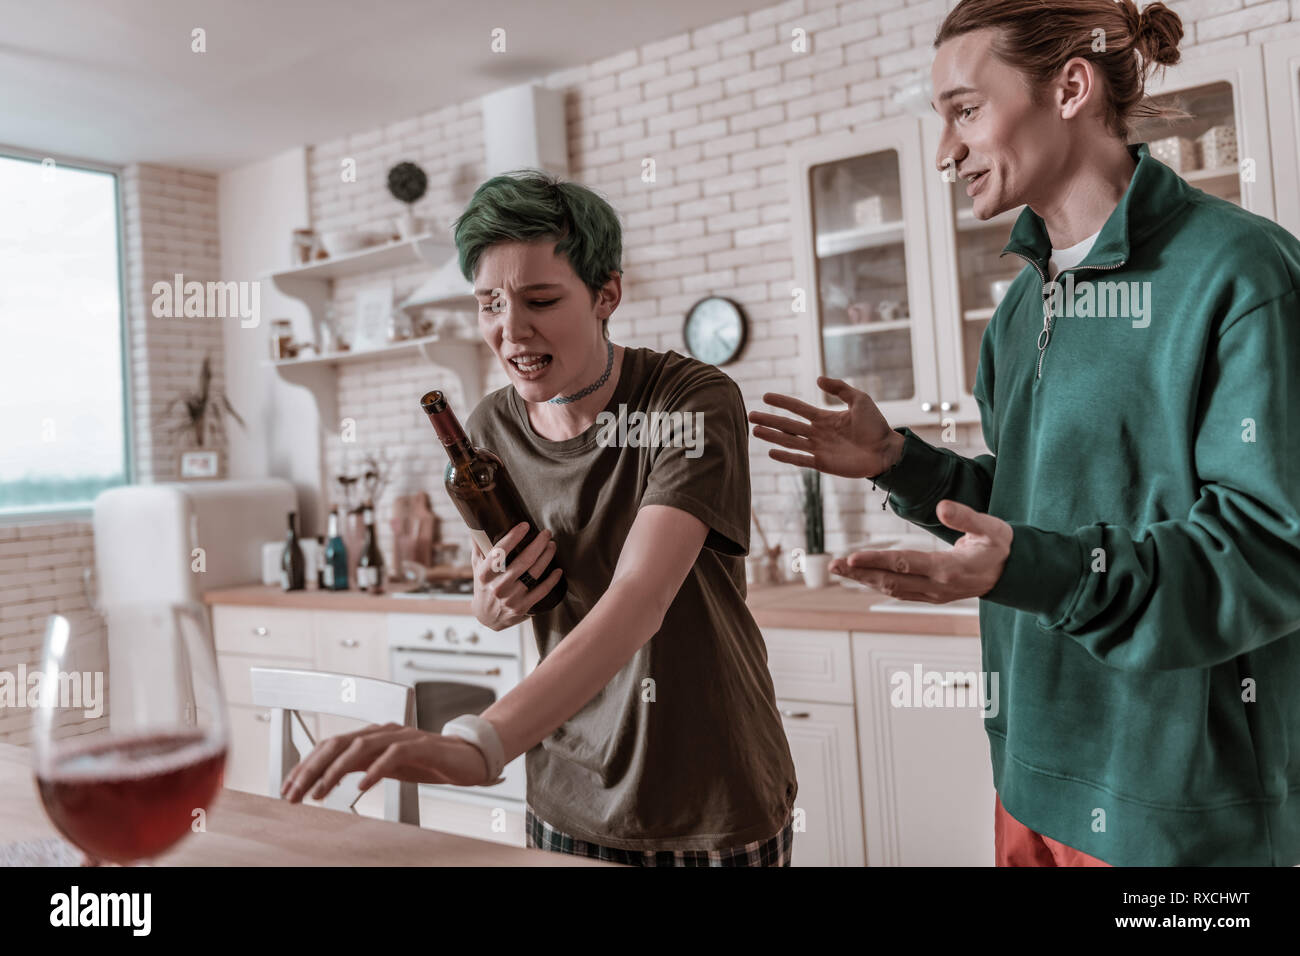 Hysterical green-haired woman crying and holding bottle of wine - Stock Image